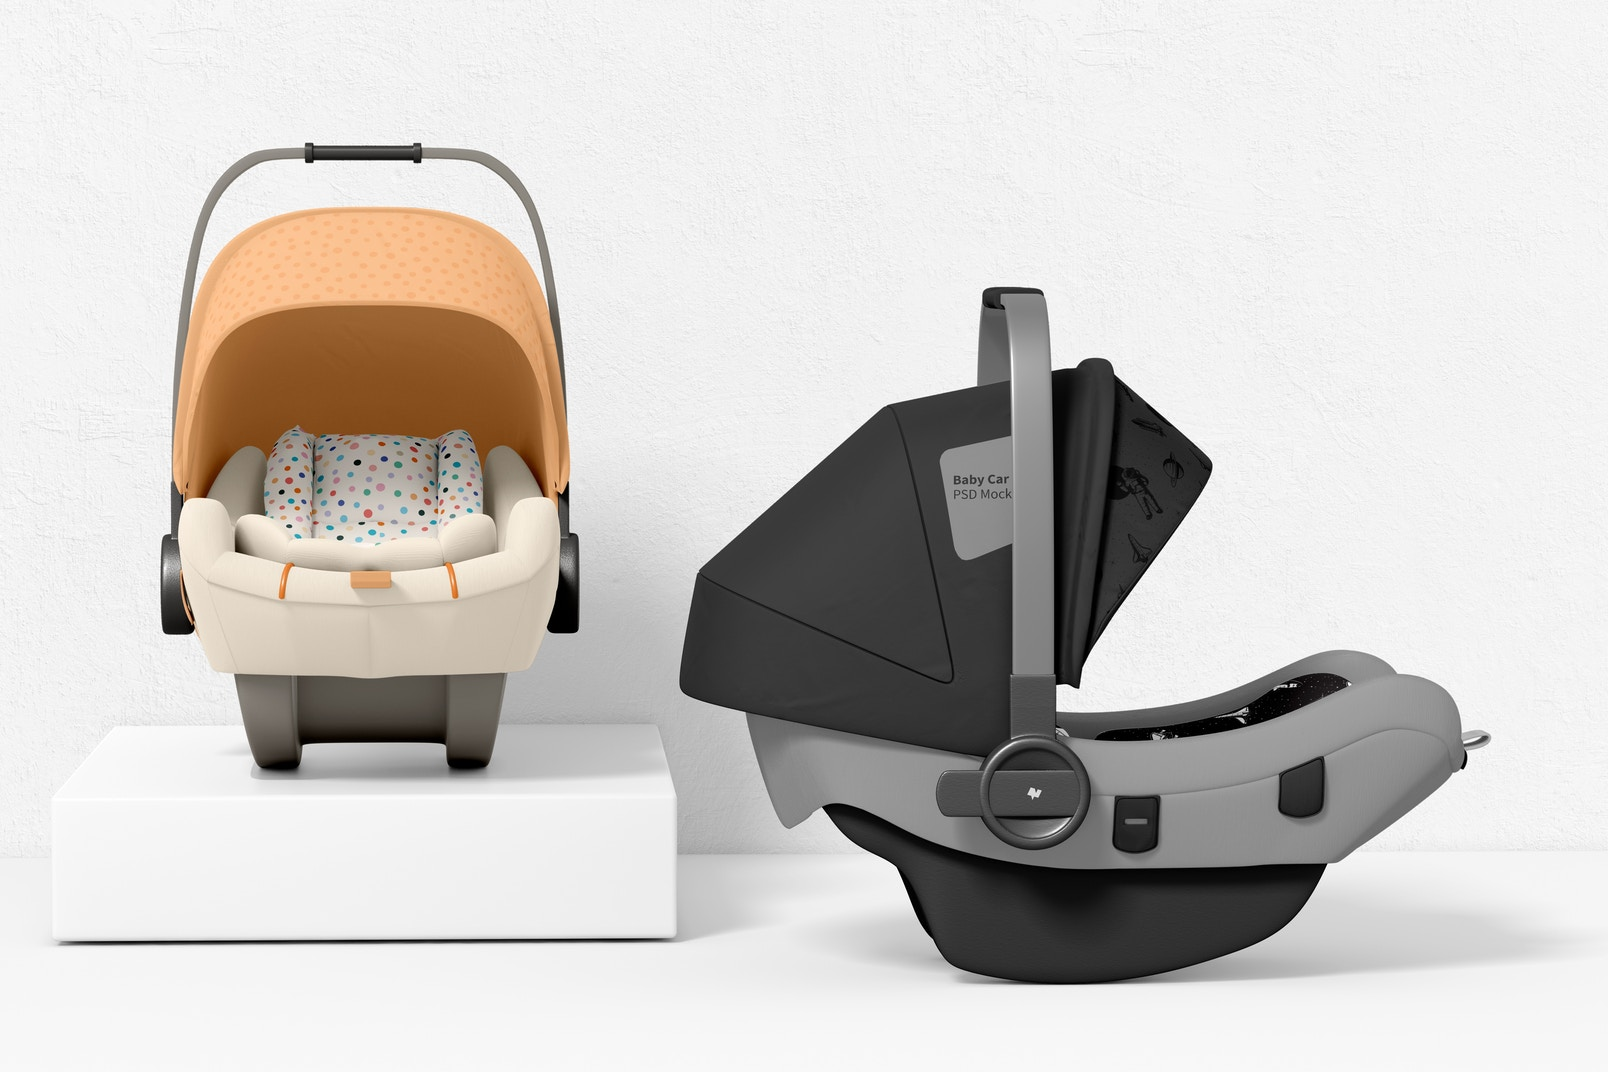 Baby Car Seats Mockup, Front and Right View